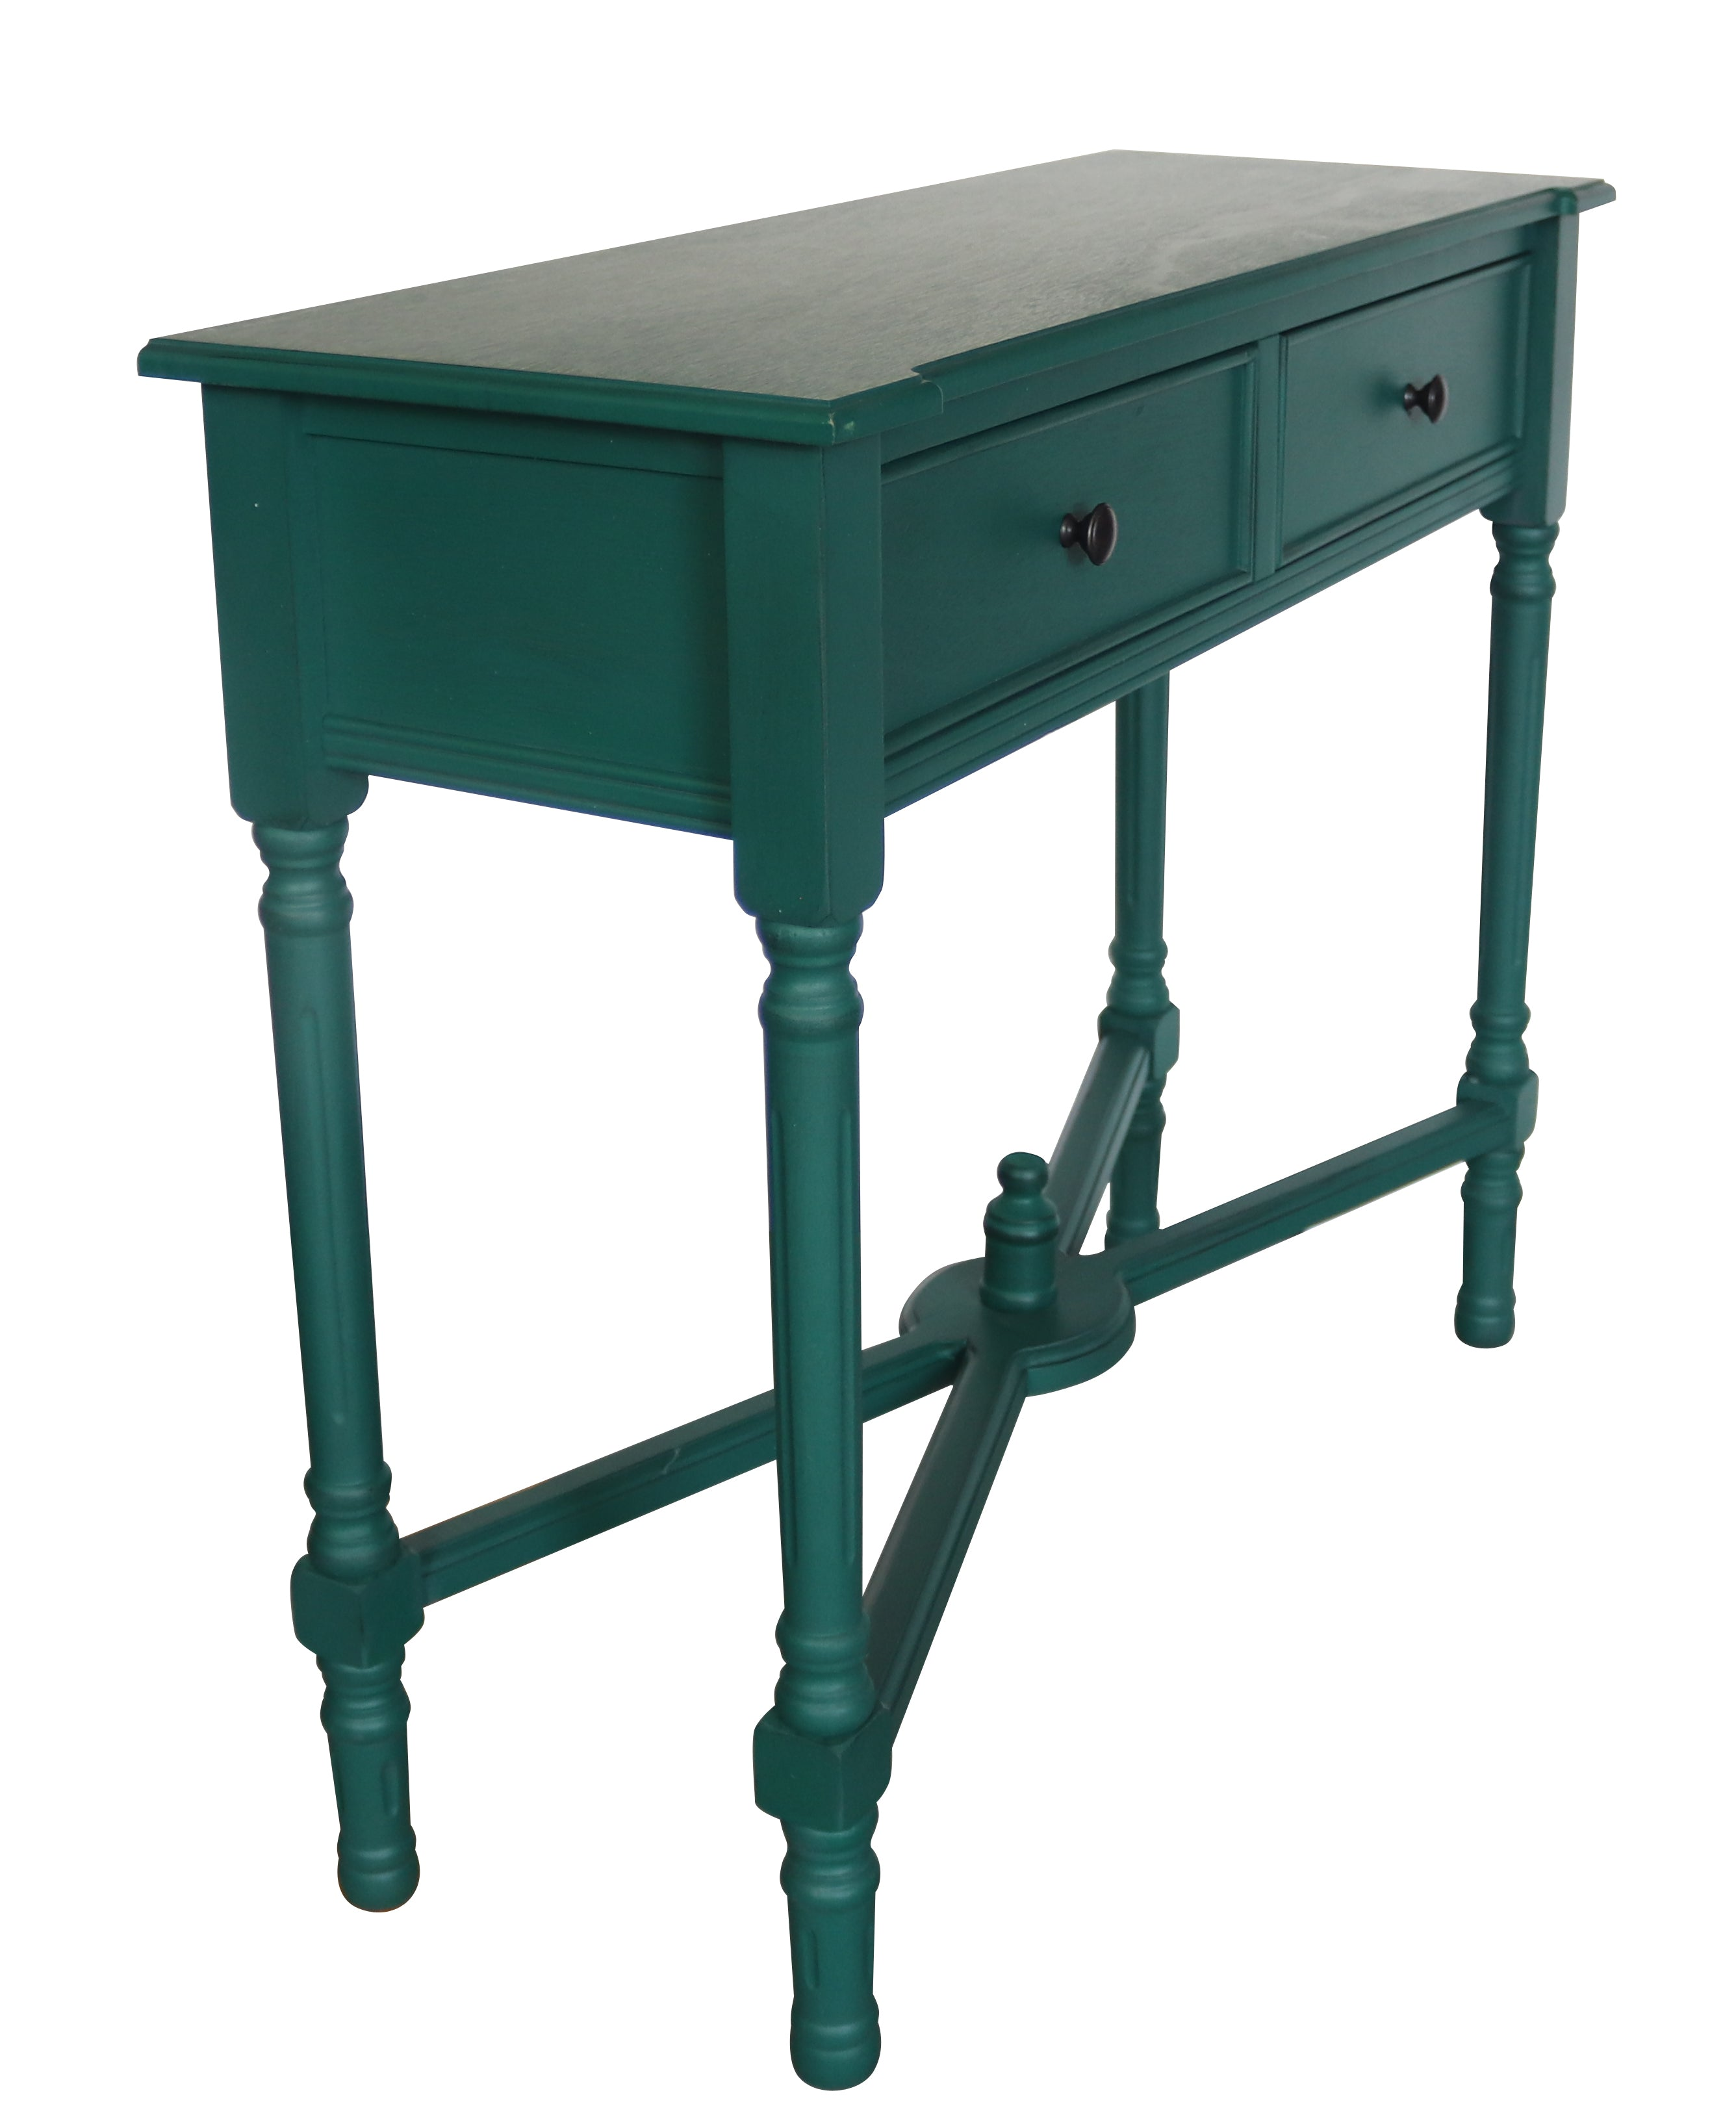 Woodbridge Console Table with 2 Drawers, 29 5/8-inch Tall, 35 3/4-inch Wide, 13-inch Deep